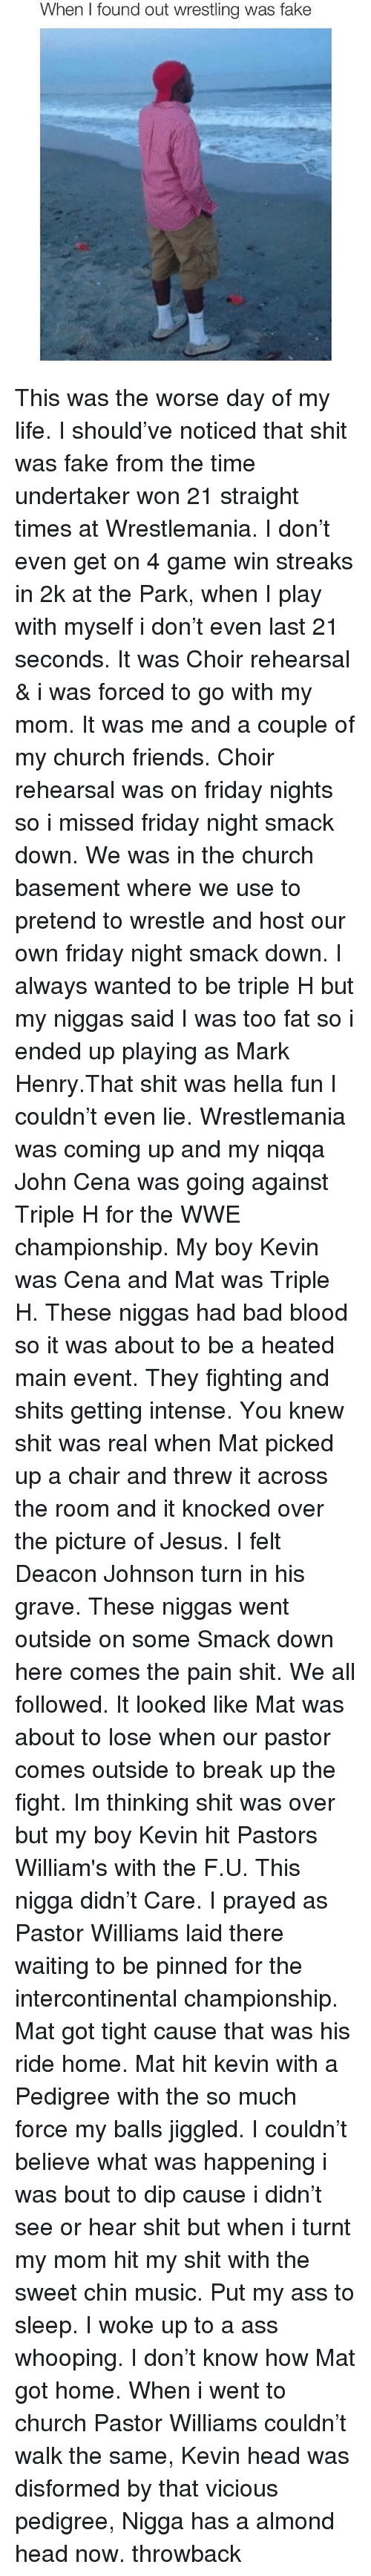 Main Event: When I found out wrestling was fake This was the worse day of my life. I should've noticed that shit was fake from the time undertaker won 21 straight times at Wrestlemania. I don't even get on 4 game win streaks in 2k at the Park, when I play with myself i don't even last 21 seconds. It was Choir rehearsal & i was forced to go with my mom. It was me and a couple of my church friends. Choir rehearsal was on friday nights so i missed friday night smack down. We was in the church basement where we use to pretend to wrestle and host our own friday night smack down. I always wanted to be triple H but my niggas said I was too fat so i ended up playing as Mark Henry.That shit was hella fun I couldn't even lie. Wrestlemania was coming up and my niqqa John Cena was going against Triple H for the WWE championship. My boy Kevin was Cena and Mat was Triple H. These niggas had bad blood so it was about to be a heated main event. They fighting and shits getting intense. You knew shit was real when Mat picked up a chair and threw it across the room and it knocked over the picture of Jesus. I felt Deacon Johnson turn in his grave. These niggas went outside on some Smack down here comes the pain shit. We all followed. It looked like Mat was about to lose when our pastor comes outside to break up the fight. Im thinking shit was over but my boy Kevin hit Pastors William's with the F.U. This nigga didn't Care. I prayed as Pastor Williams laid there waiting to be pinned for the intercontinental championship. Mat got tight cause that was his ride home. Mat hit kevin with a Pedigree with the so much force my balls jiggled. I couldn't believe what was happening i was bout to dip cause i didn't see or hear shit but when i turnt my mom hit my shit with the sweet chin music. Put my ass to sleep. I woke up to a ass whooping. I don't know how Mat got home. When i went to church Pastor Williams couldn't walk the same, Kevin head was disformed by that vicious pedigree, Nigga has a al